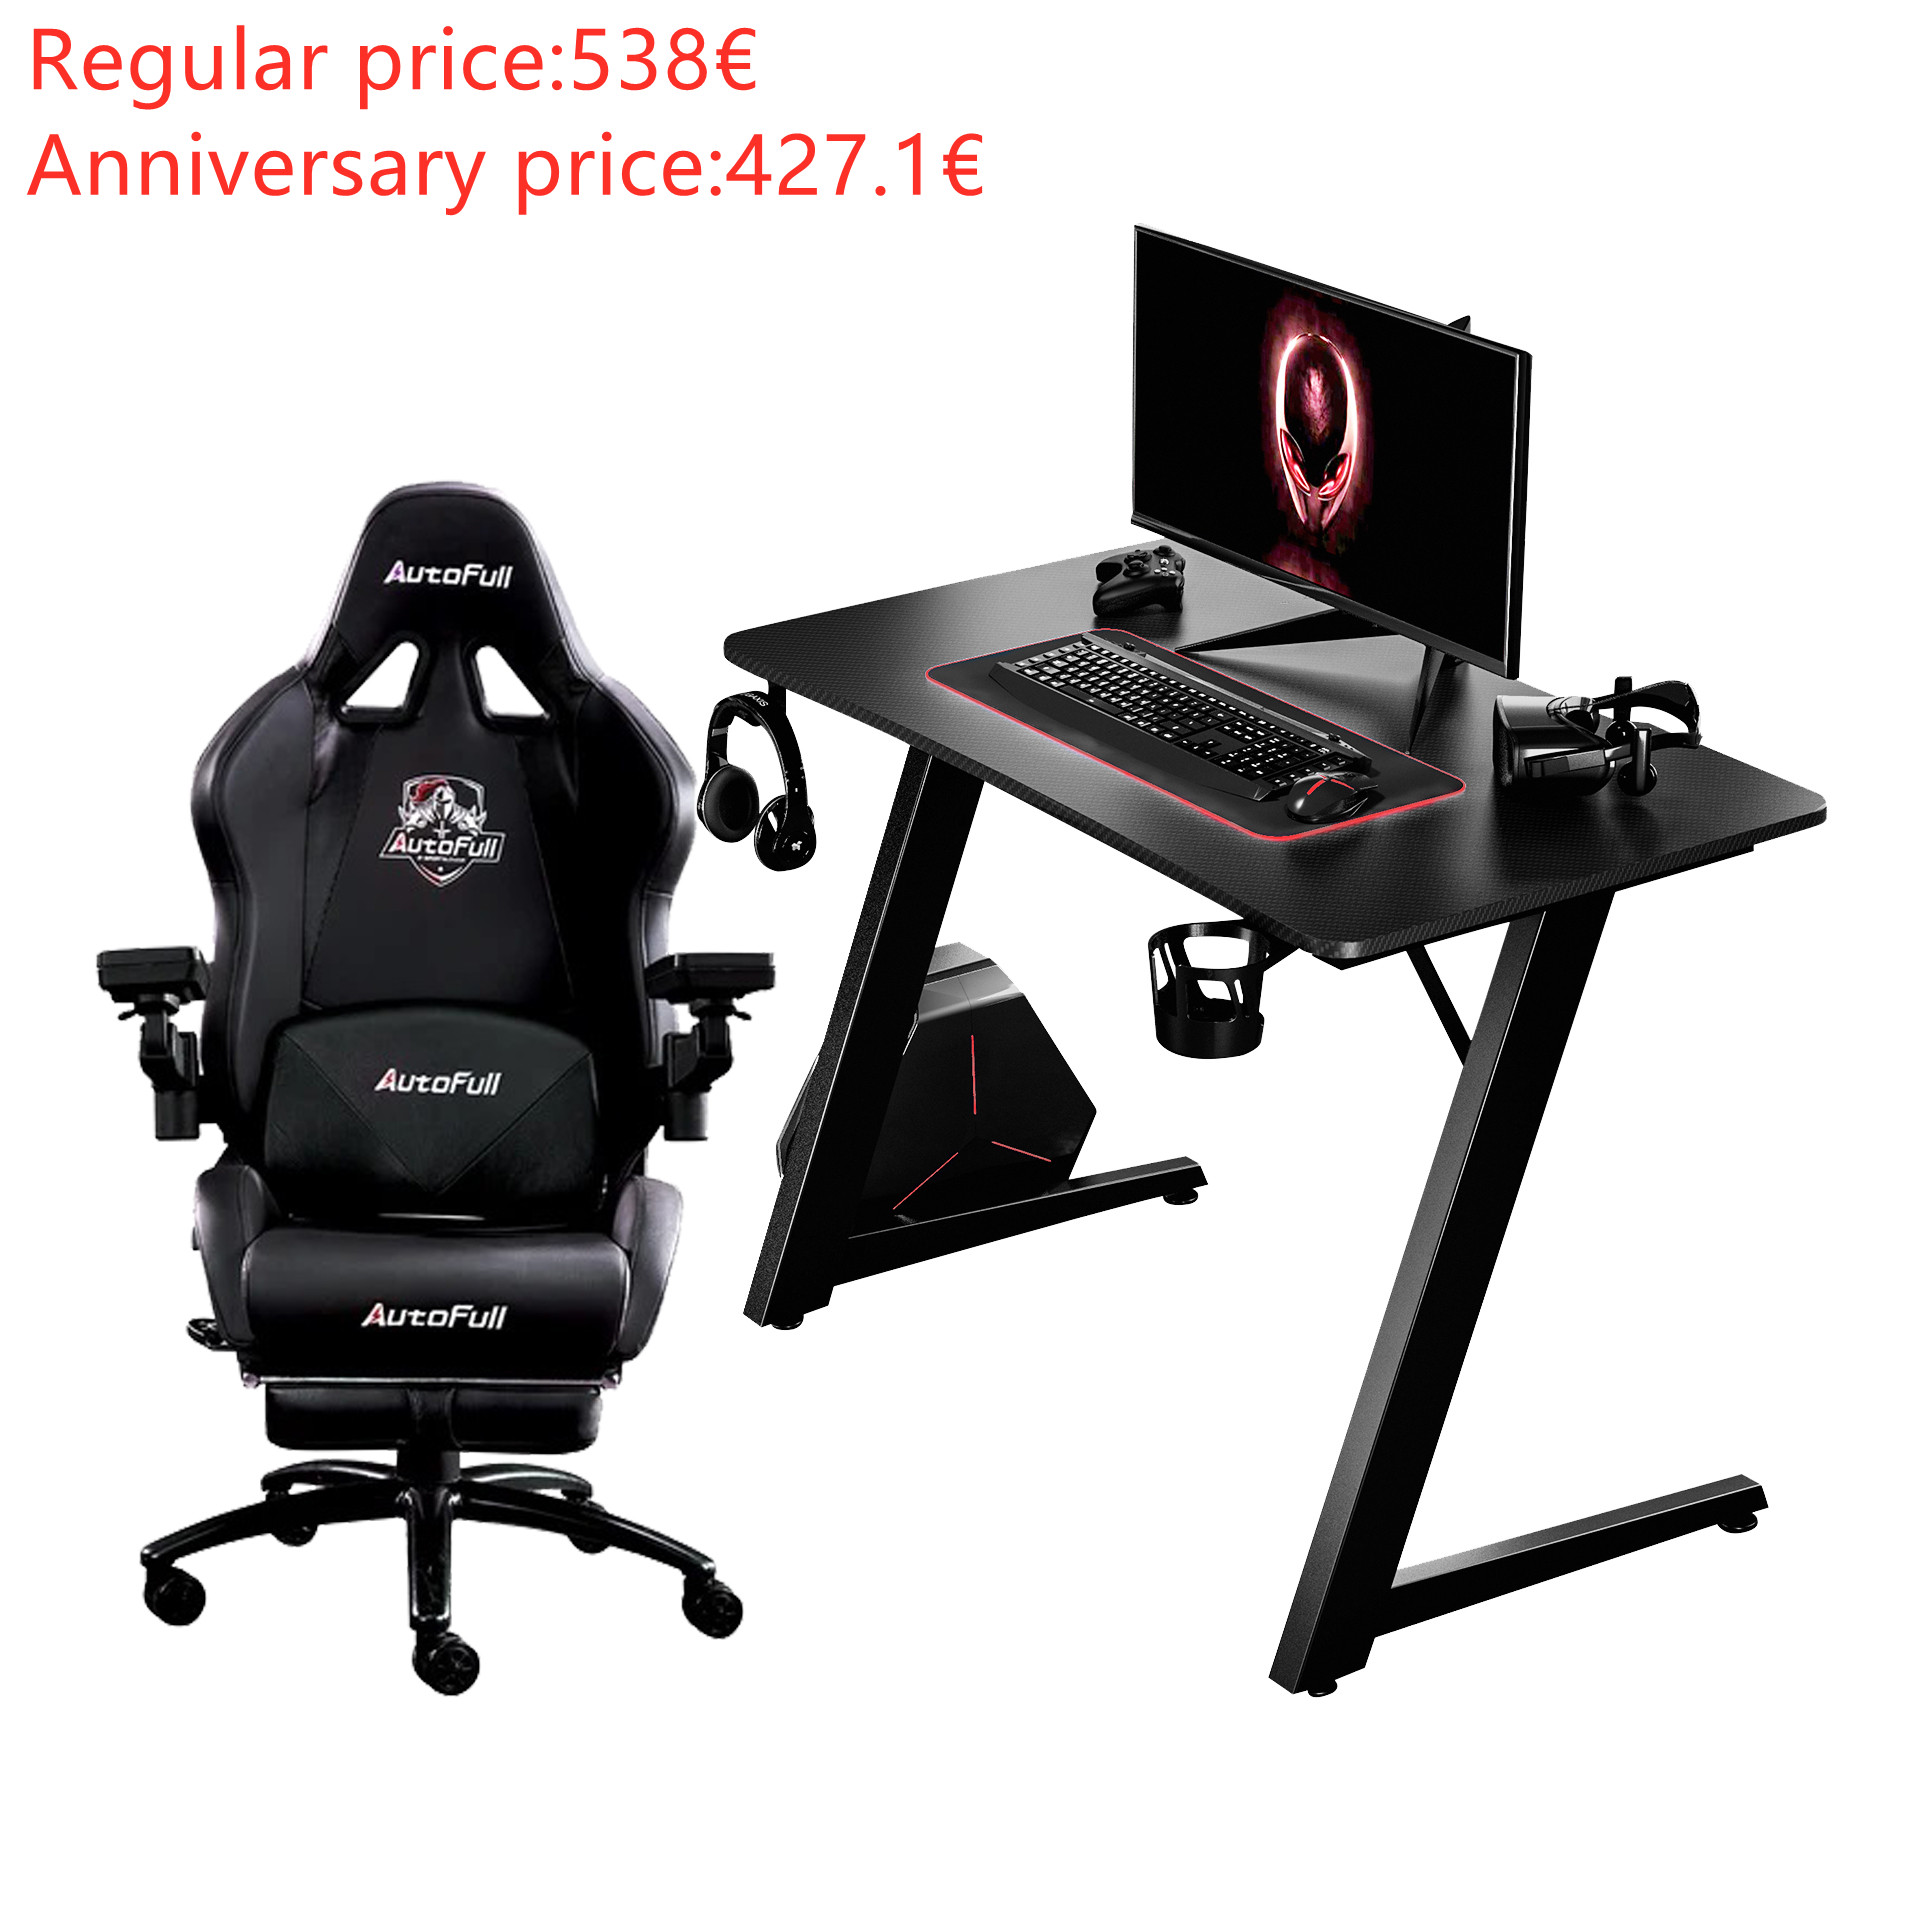 Autofull AF066DPUS+AFDJZ004BL Gaming Chair and Desk Combo